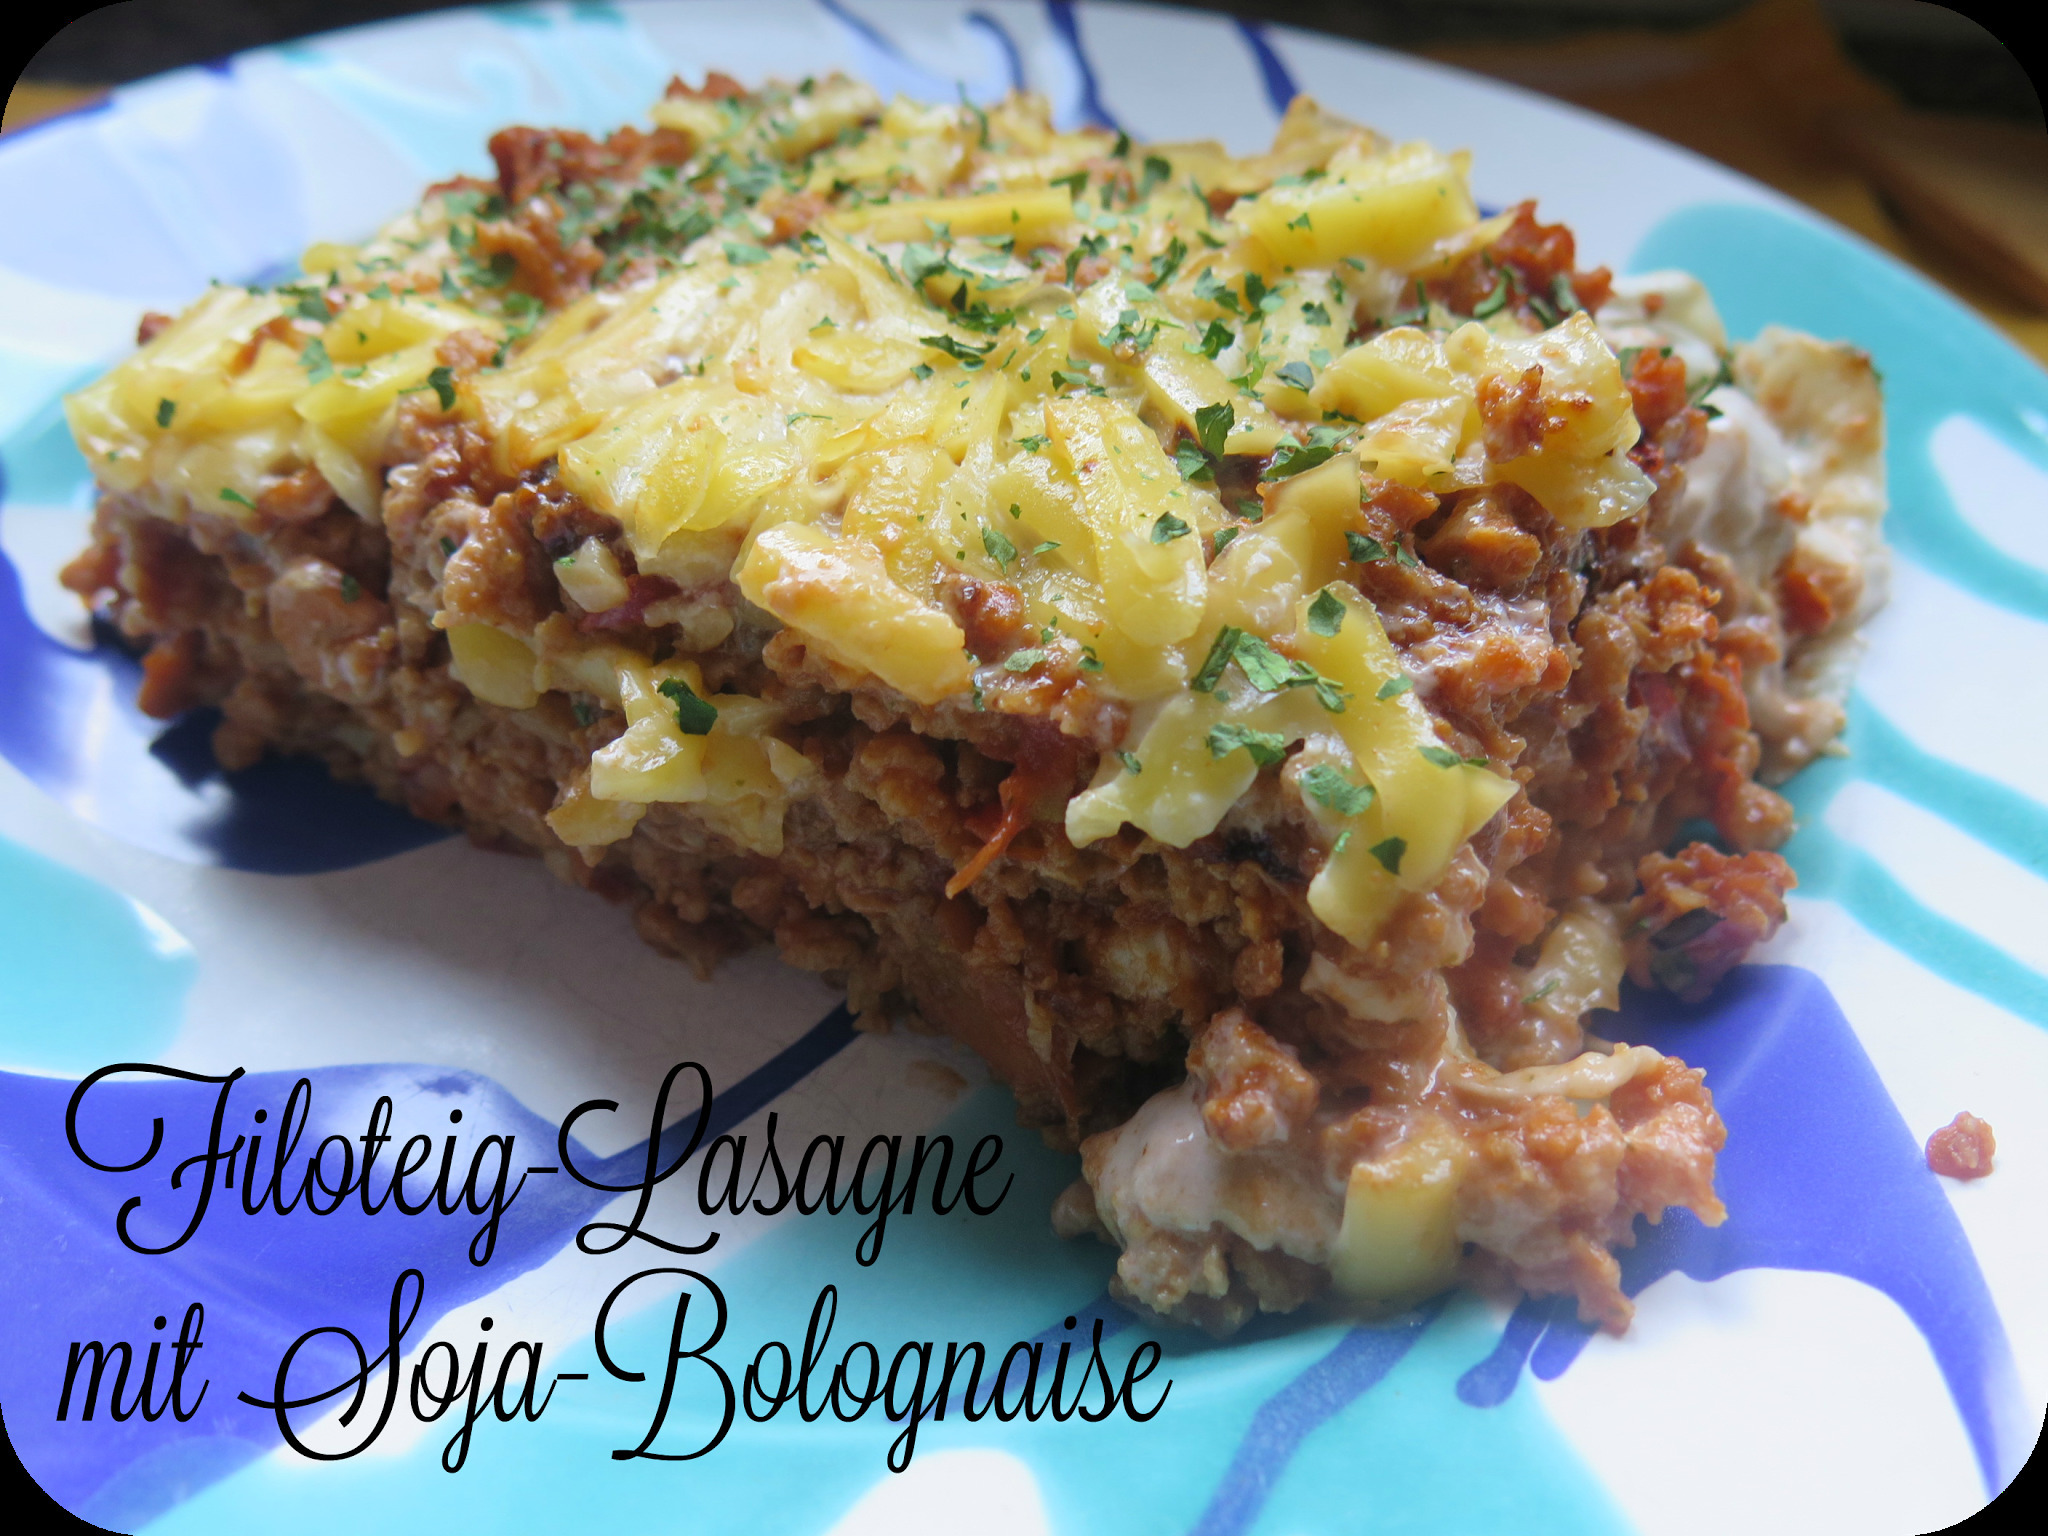 {Use up along} Challenge 6 - Filo-Lasagne mit Soja-Bolognaise